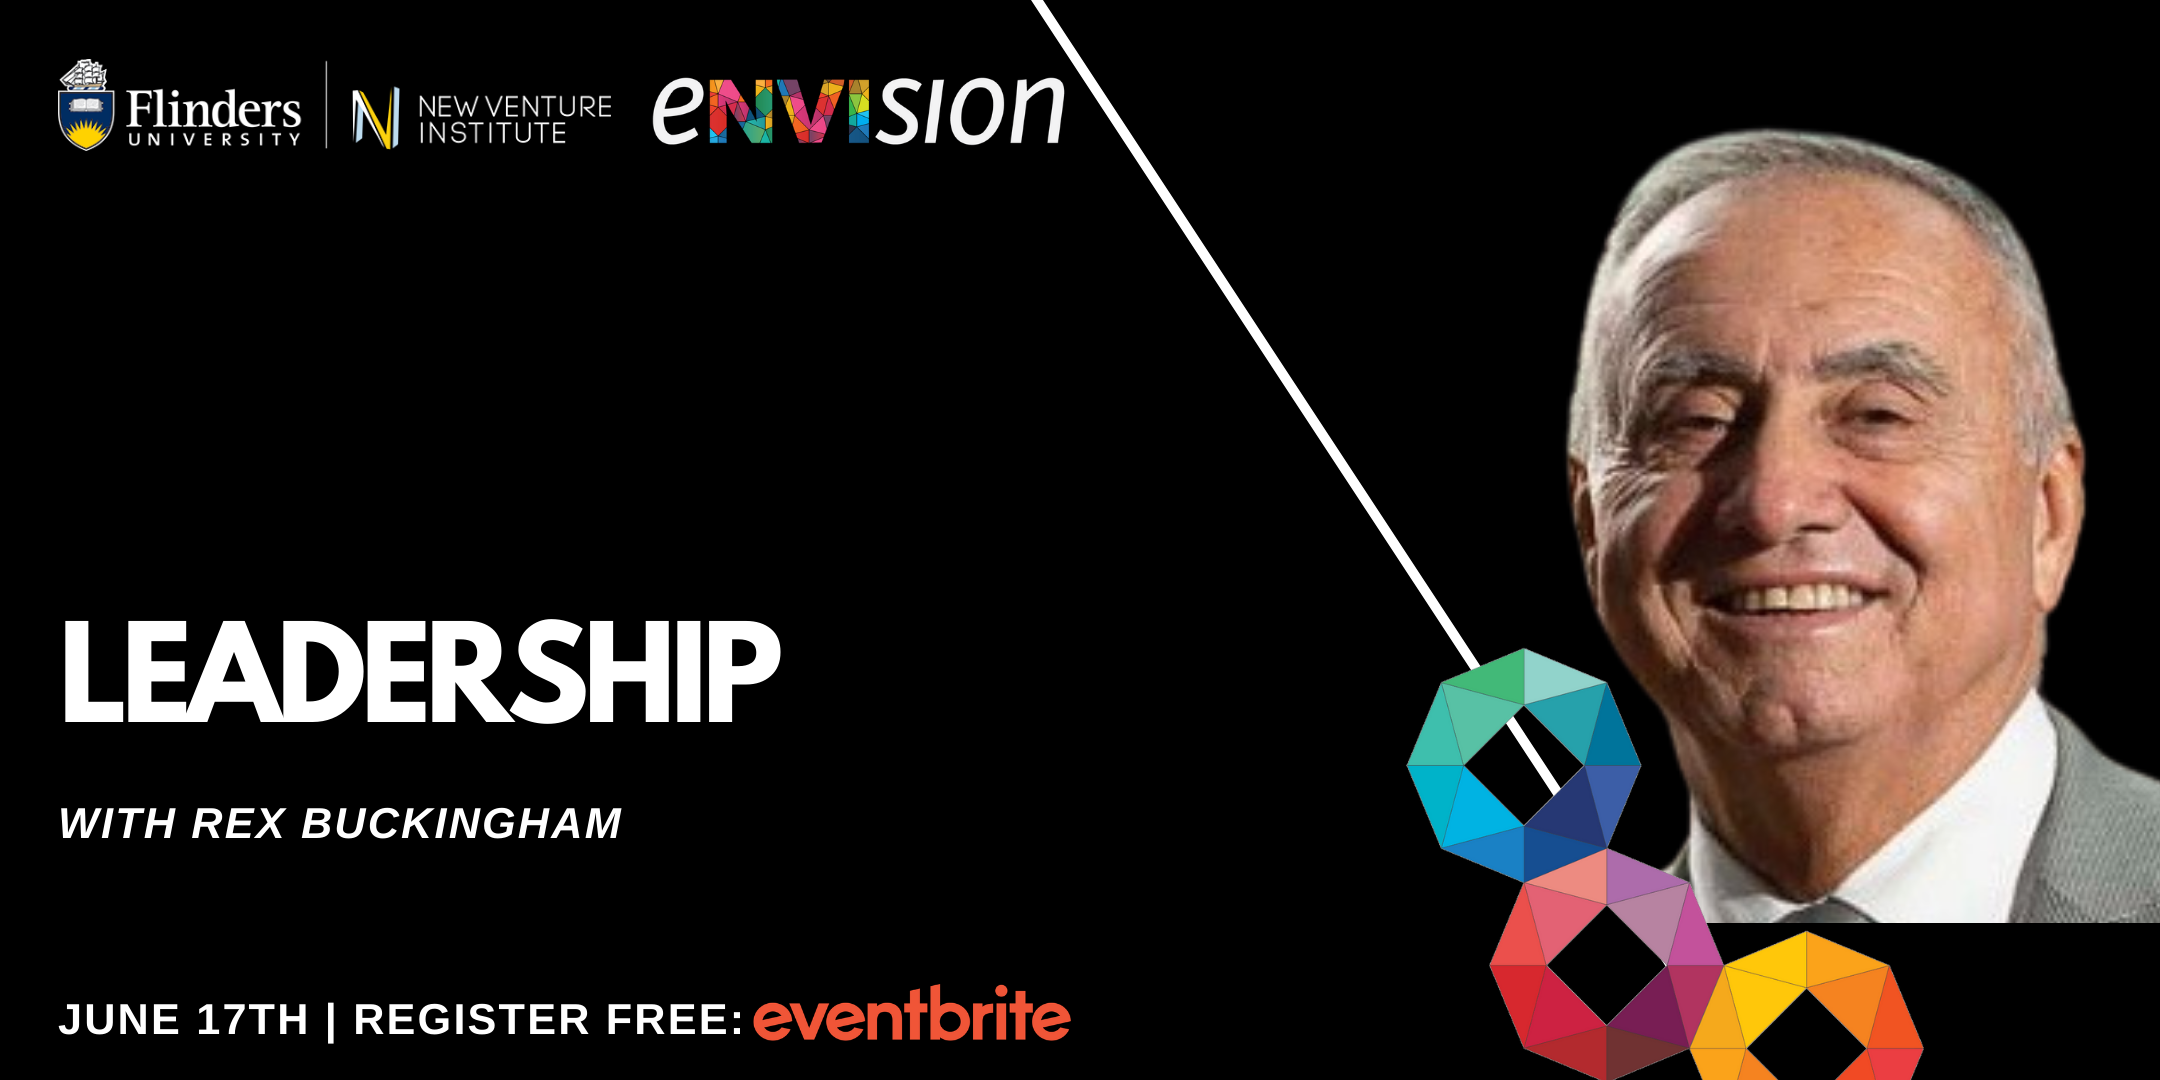 eNVIsion event with Rex Buckingham